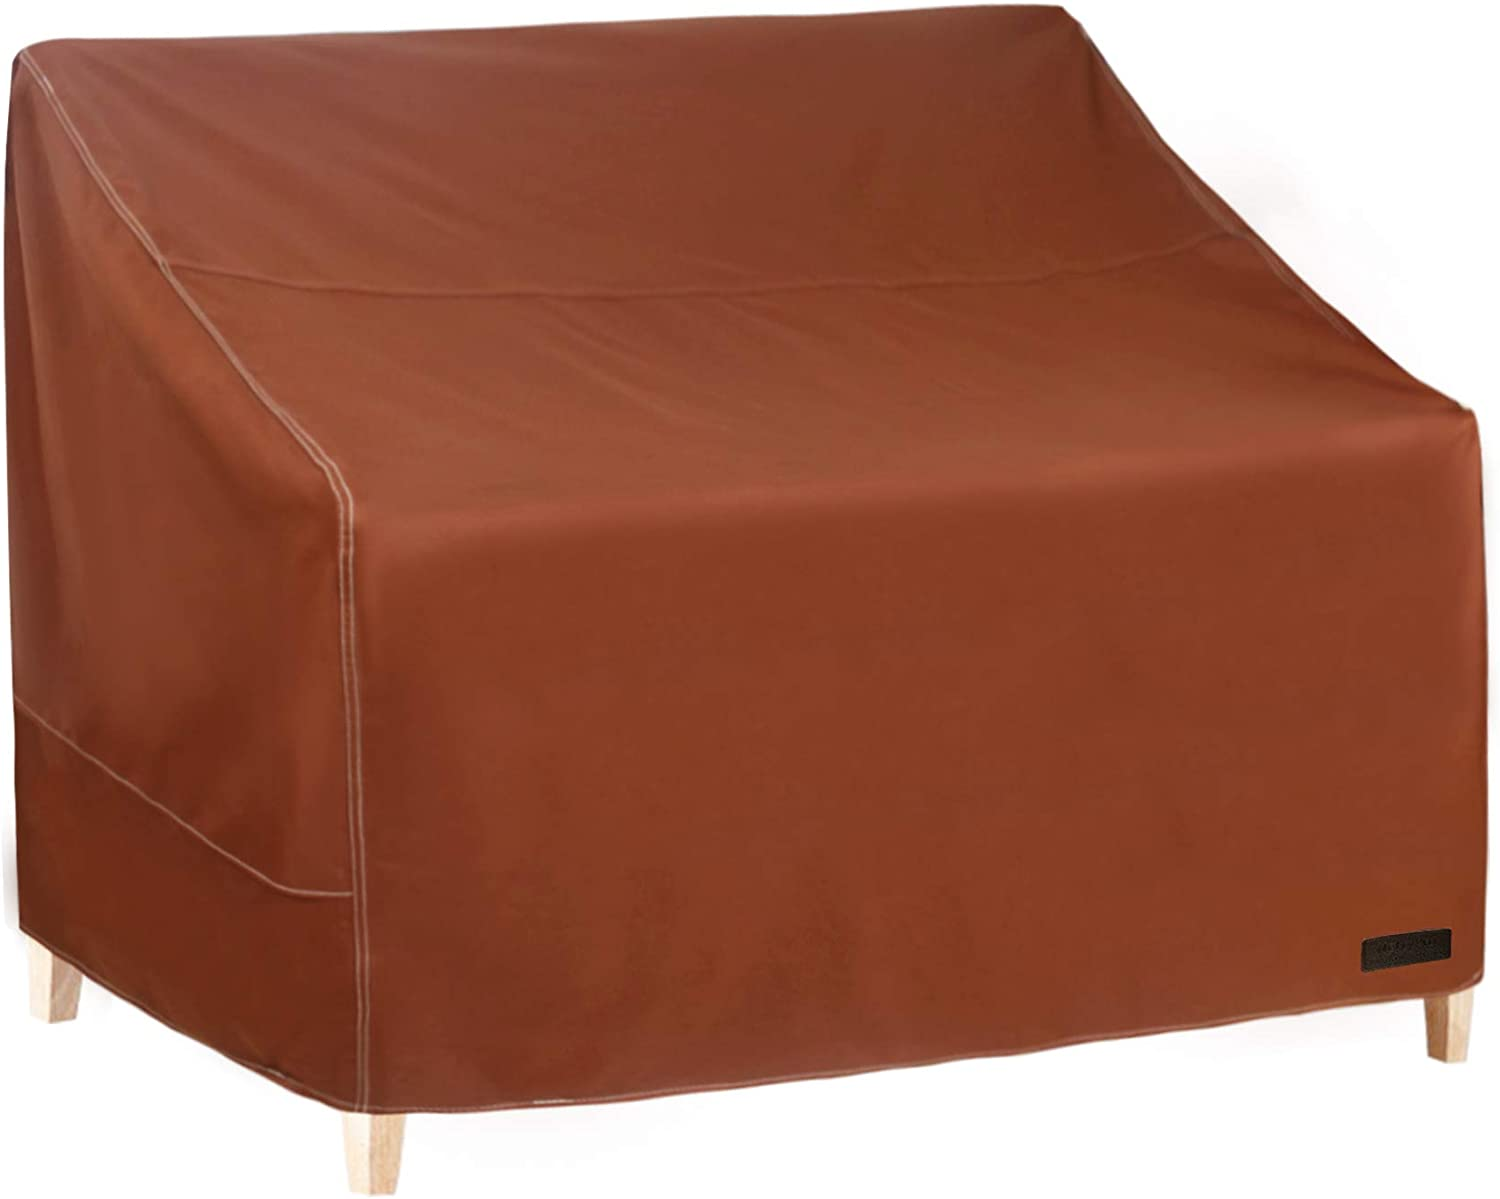 NettyPro Outdoor Loveseat Sofa Cover 2 Seater, 600D Heavy Duty Waterproof Patio Furniture Bench Cover, 58